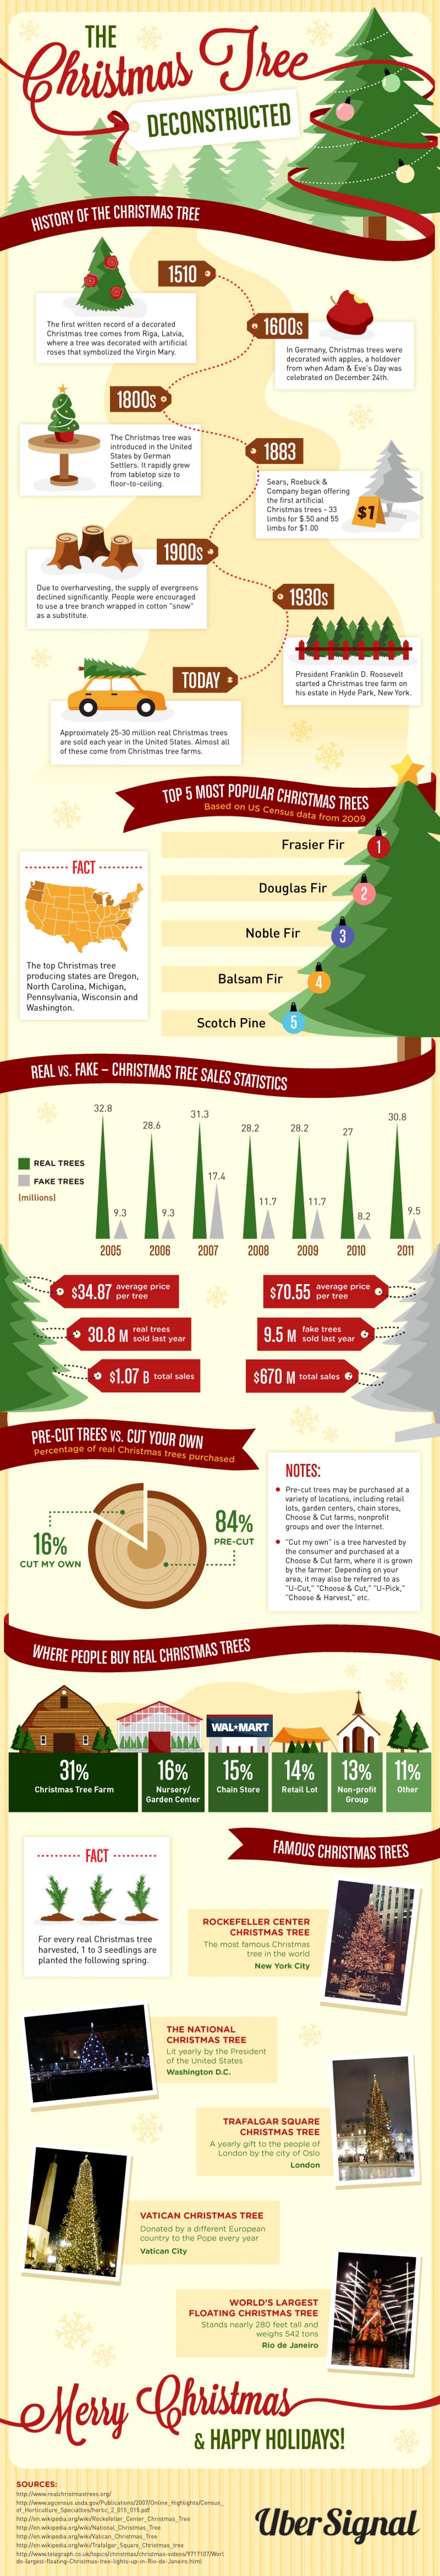 The Christmas Tree Deconstructed Infographic